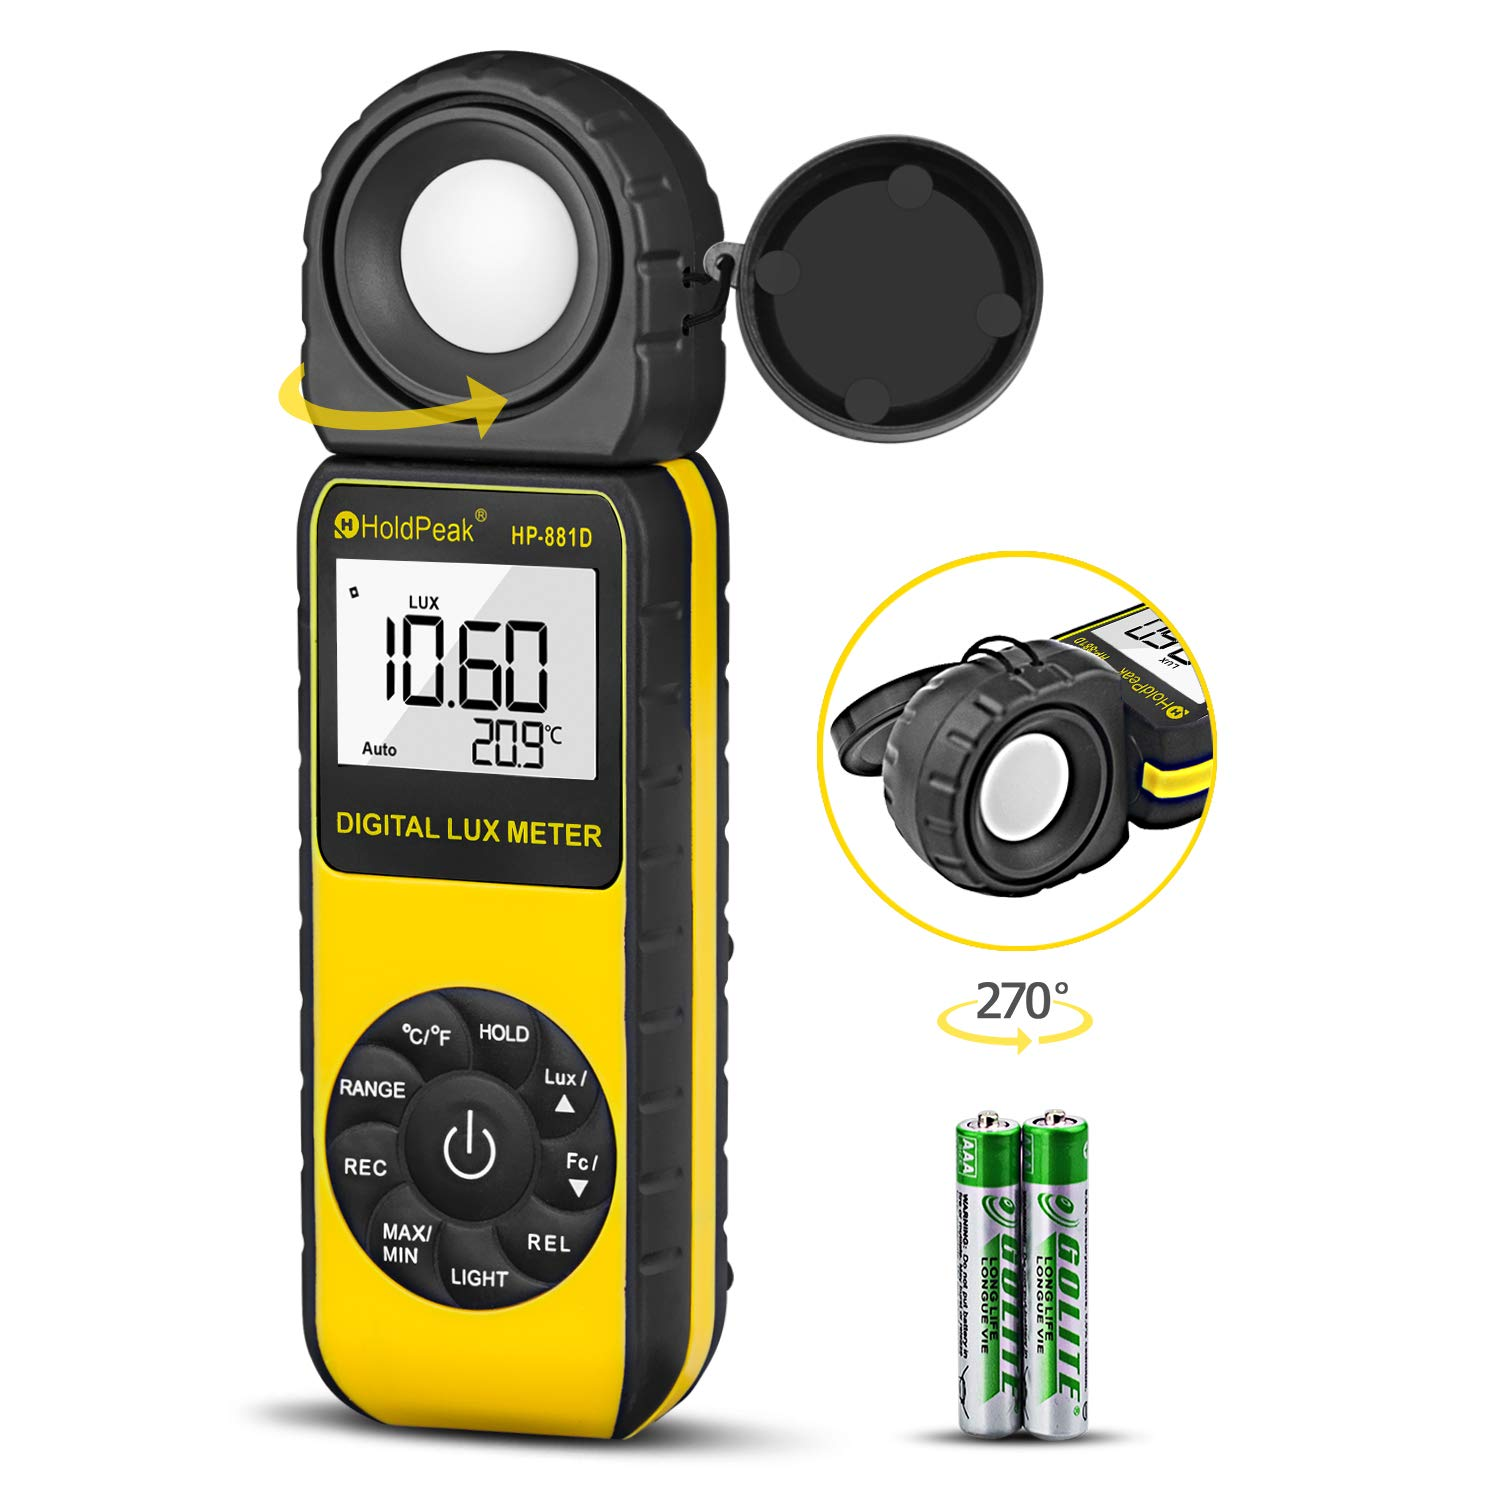 HOLDPEAK 881D Digital Illuminance/Light Meter with 0.01-400,000 Lux(1-40,000 FC) 270 ° Rotate Sensor Head, MAX/MIN,Backlight,Data Hold&Storage,lumens Meter for Plants and led Lights by H HOLDPEAK (Image #1)